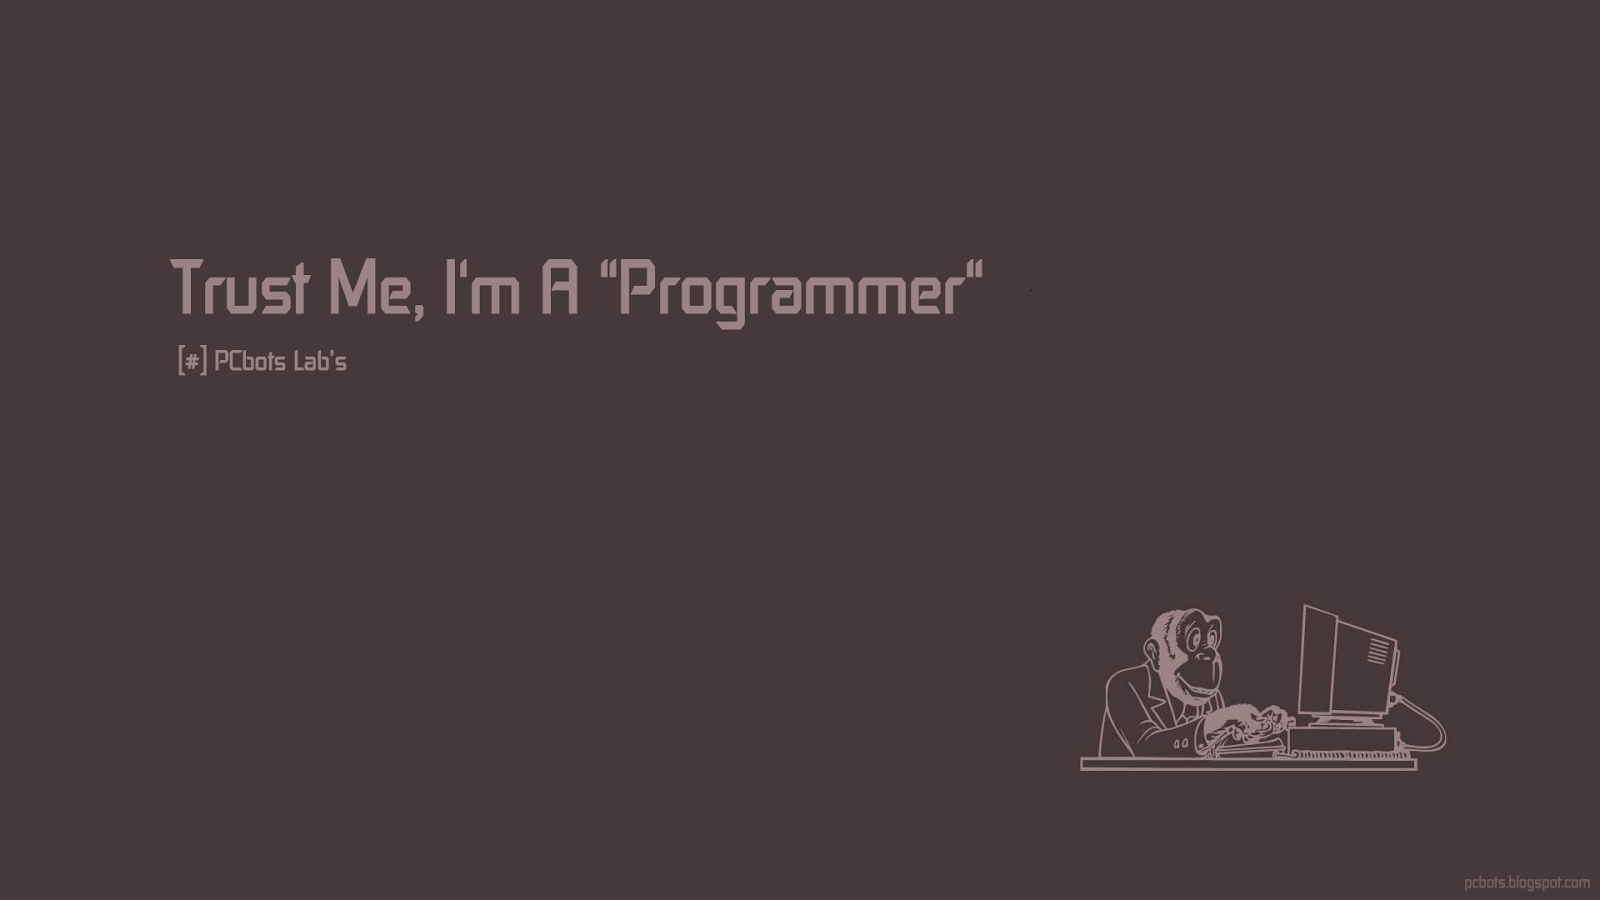 Programmers And Coders Wallpapers HD By PCbots - Part - II ...